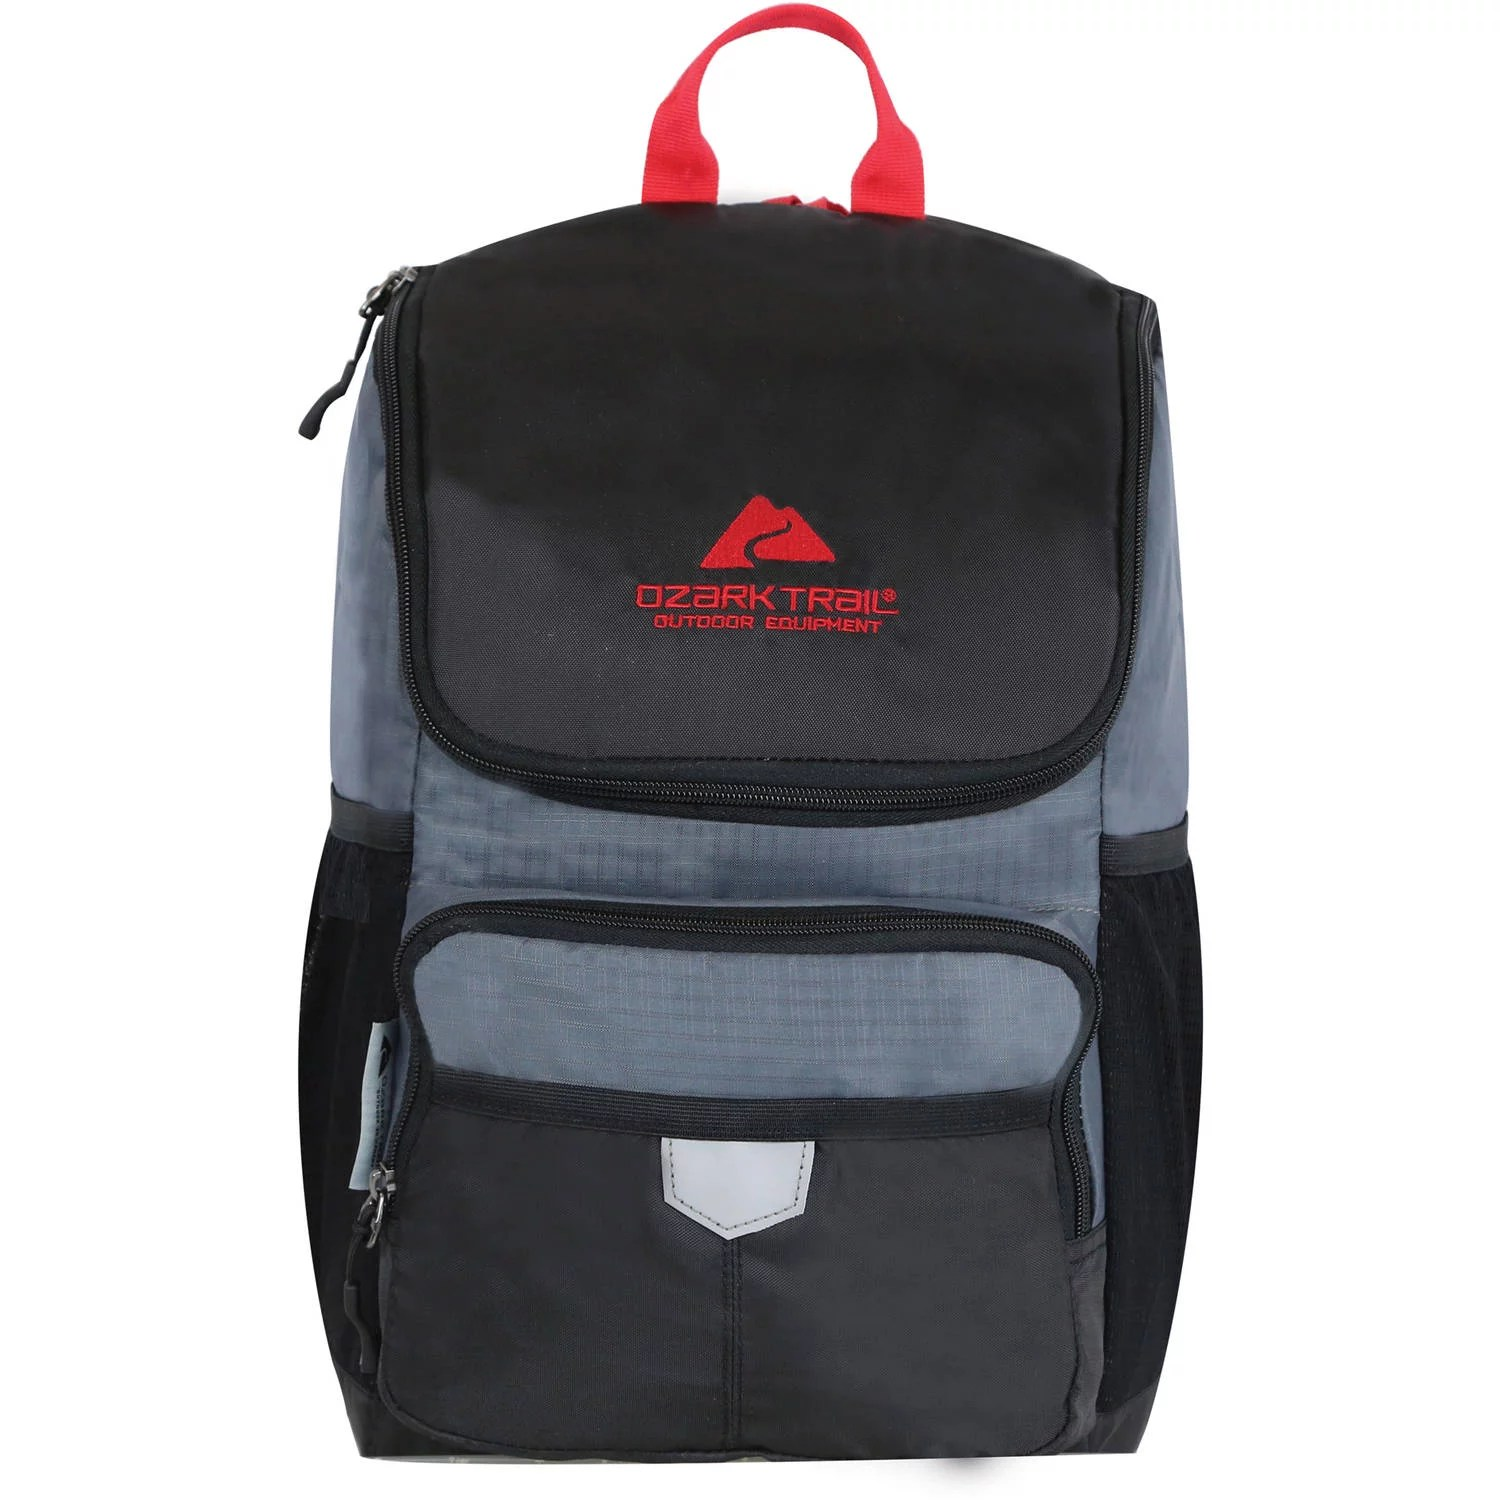 Ozark Trail 24Can Thermal Insulated Cooler Backpack